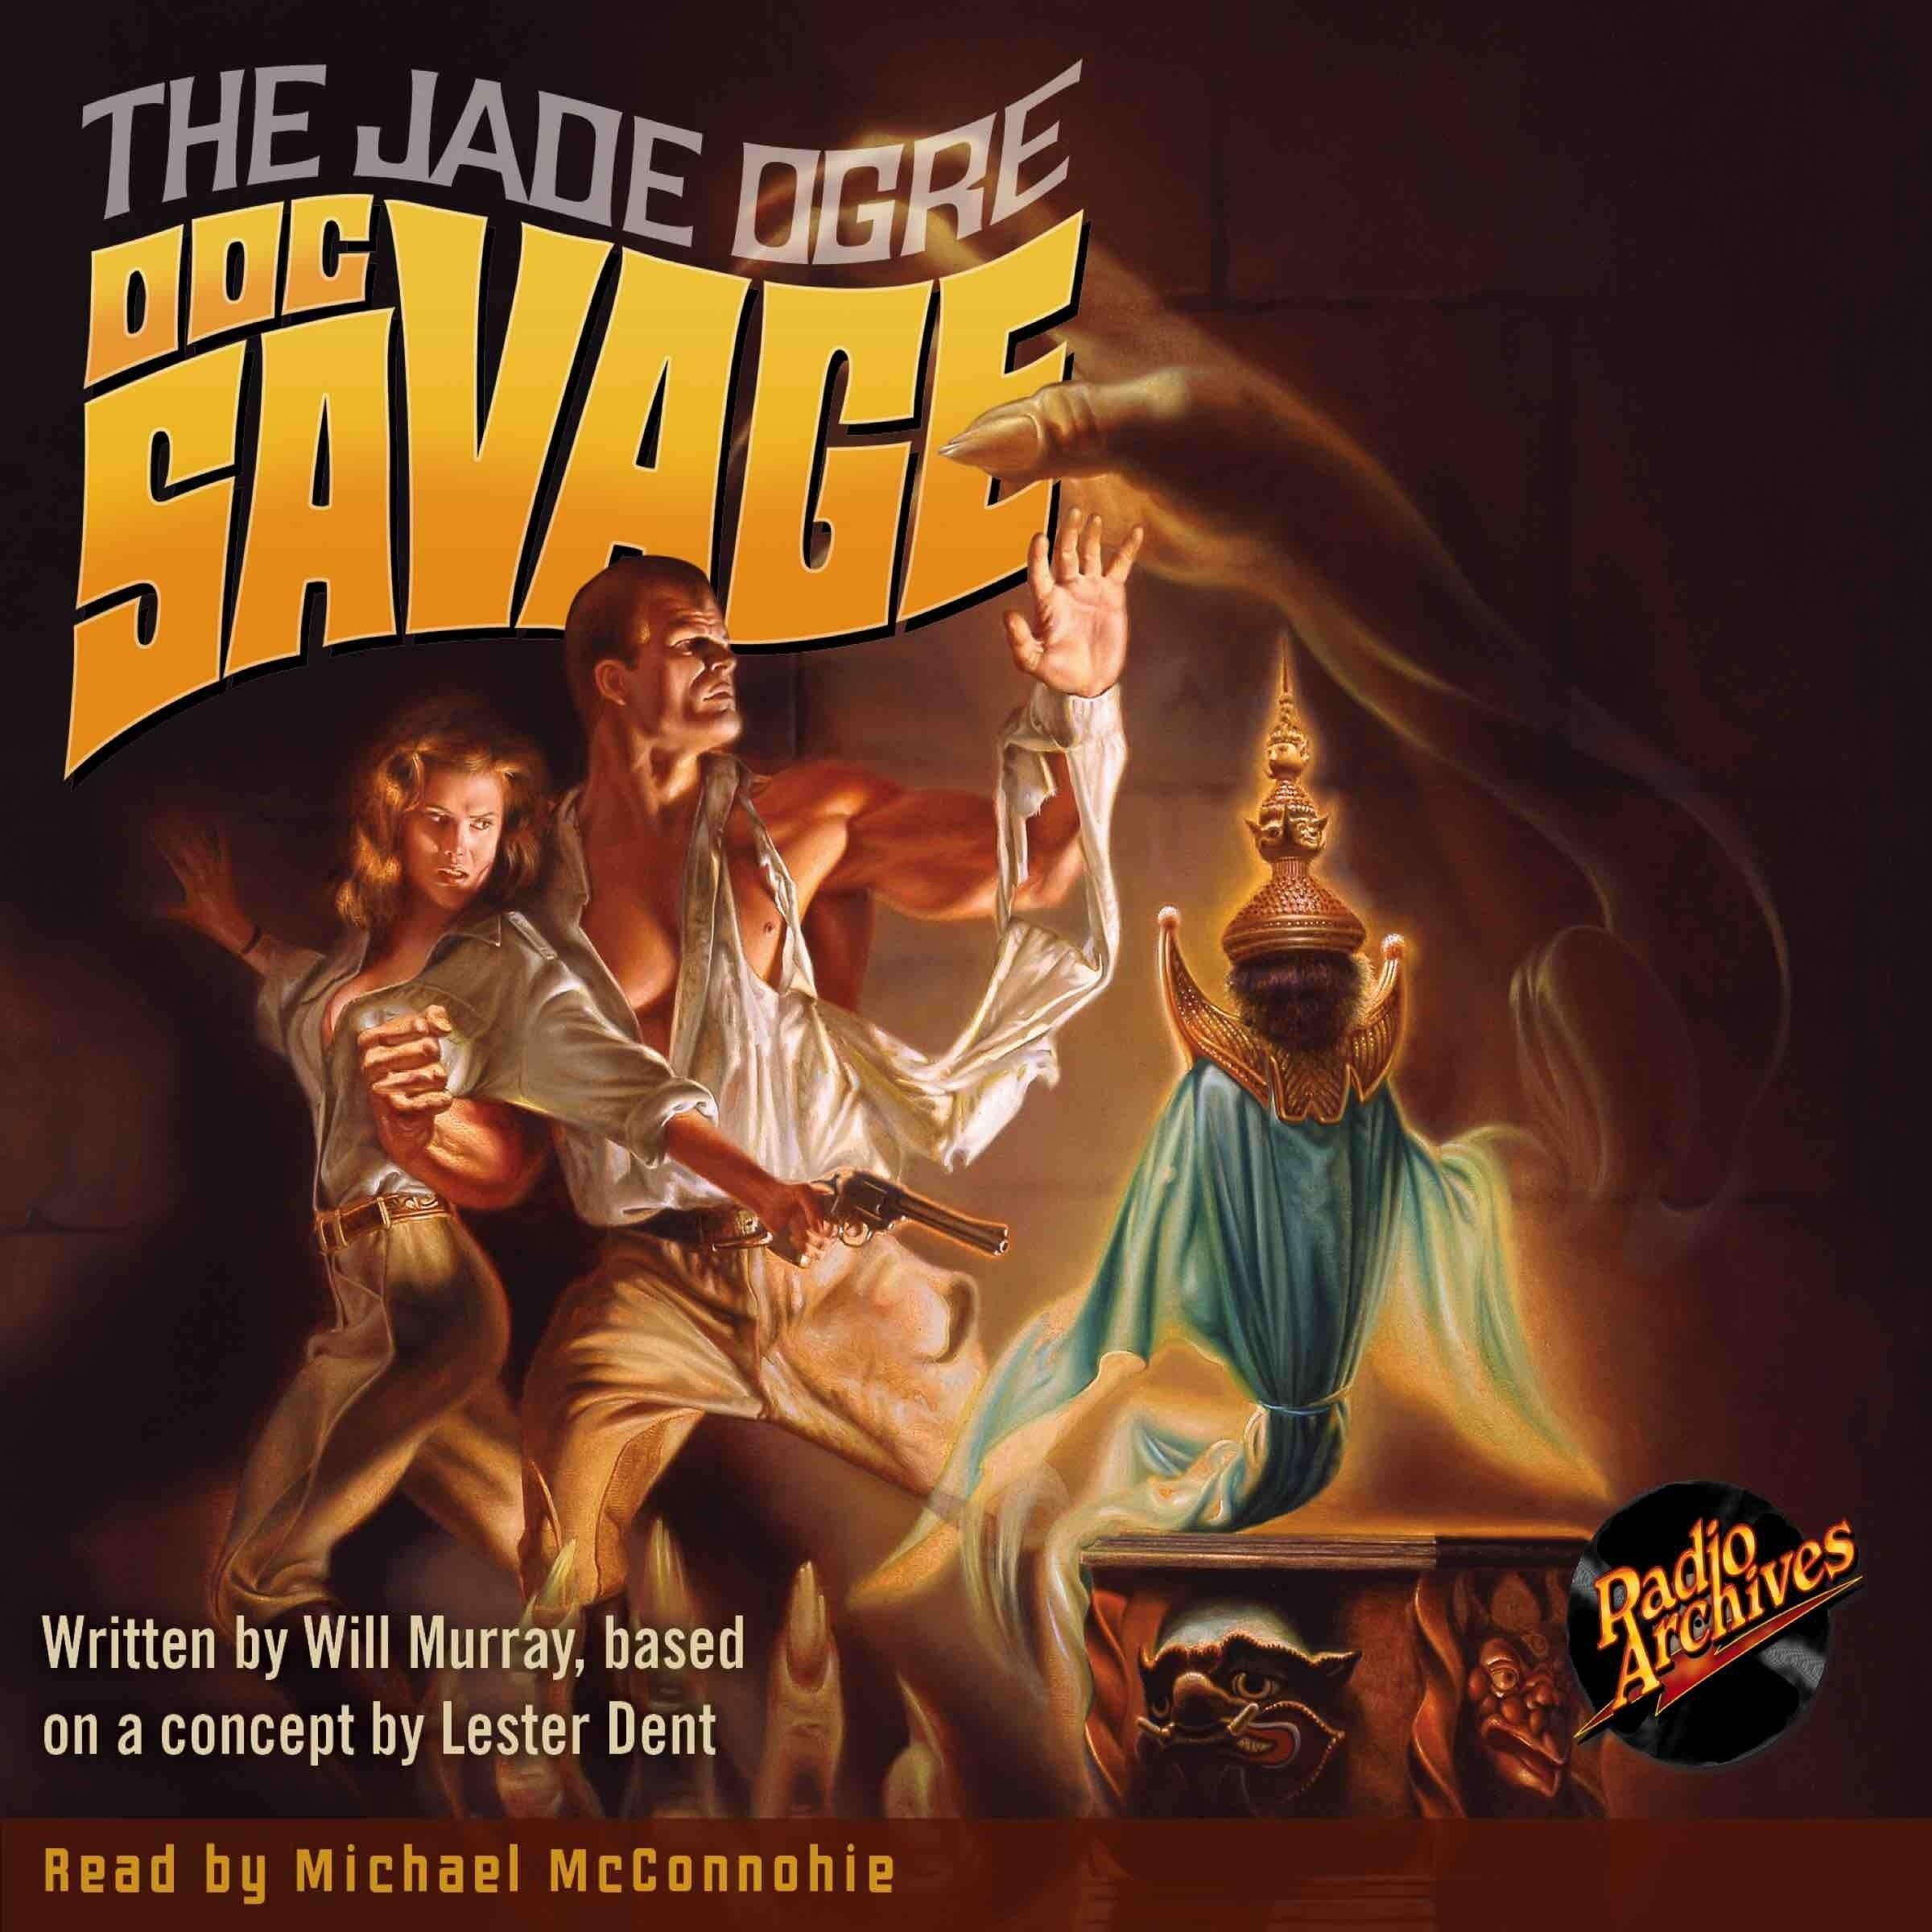 Printable Doc Savage #7: The Jade Ogre Audiobook Cover Art